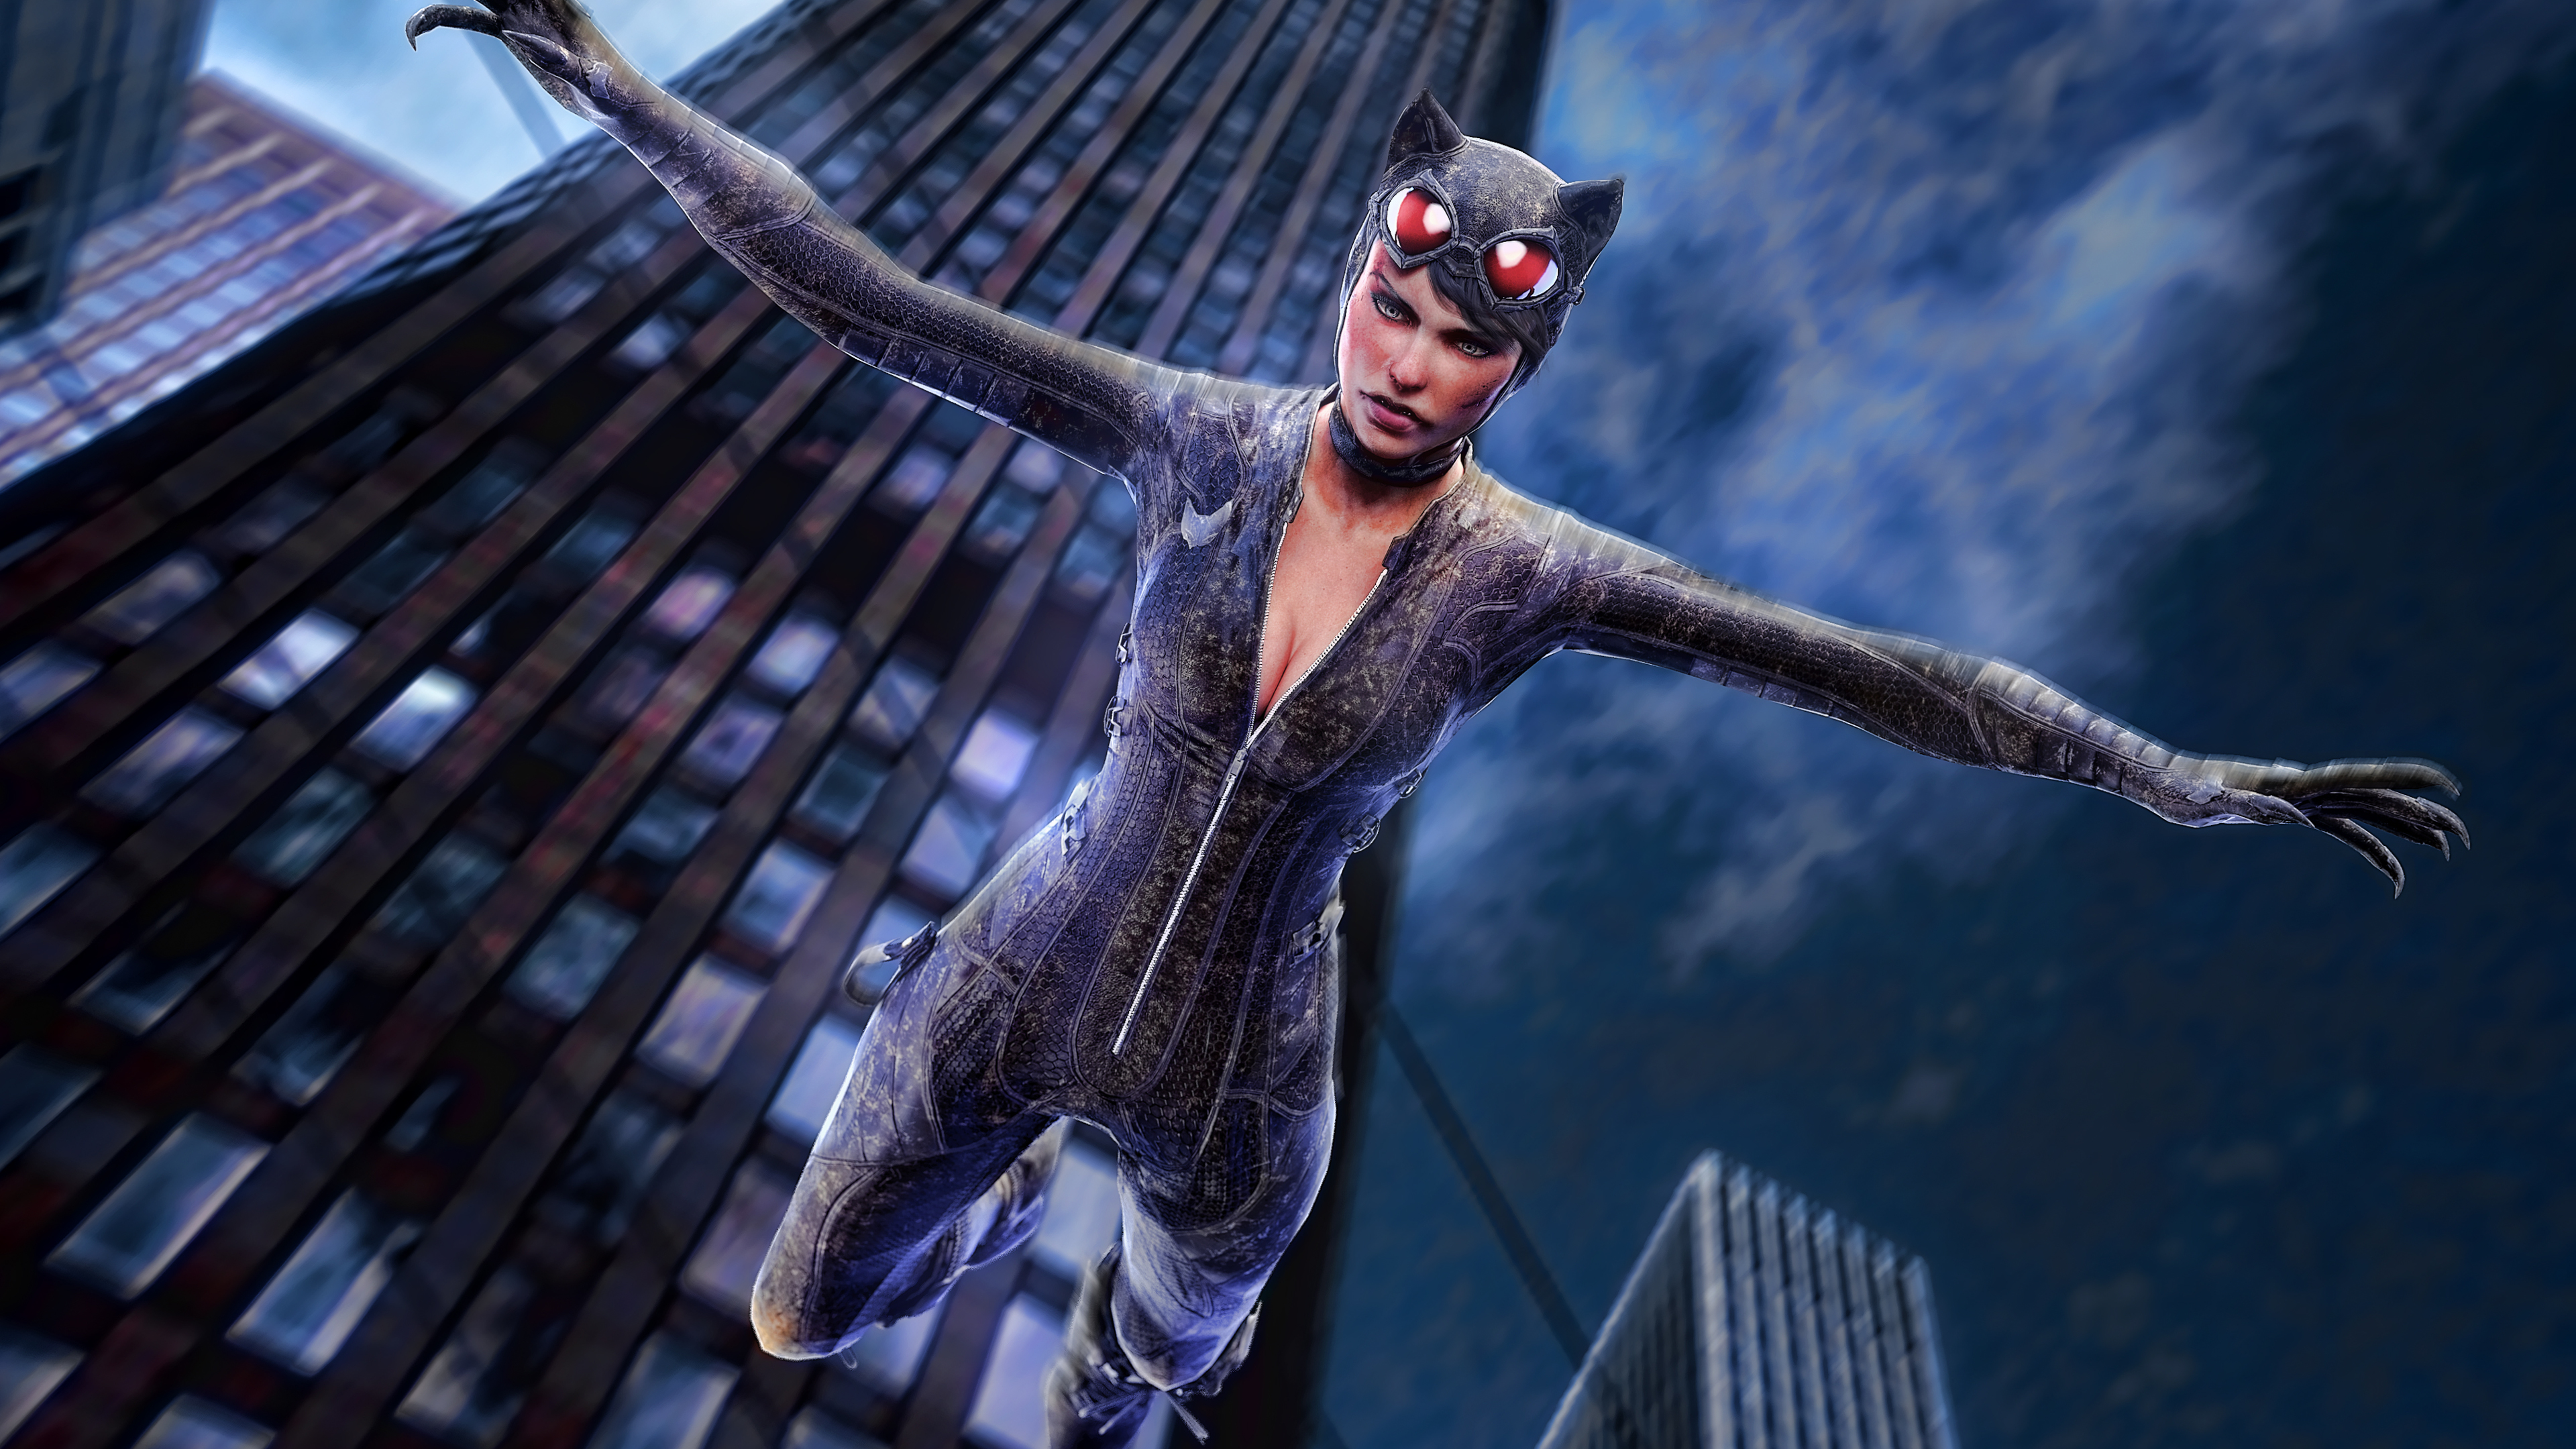 catwoman jumping out of building artwork 4k 1537646007 - Catwoman Jumping Out Of Building Artwork 4k - supervillain wallpapers, superheroes wallpapers, hd-wallpapers, deviantart wallpapers, catwoman wallpapers, artwork wallpapers, artist wallpapers, 4k-wallpapers